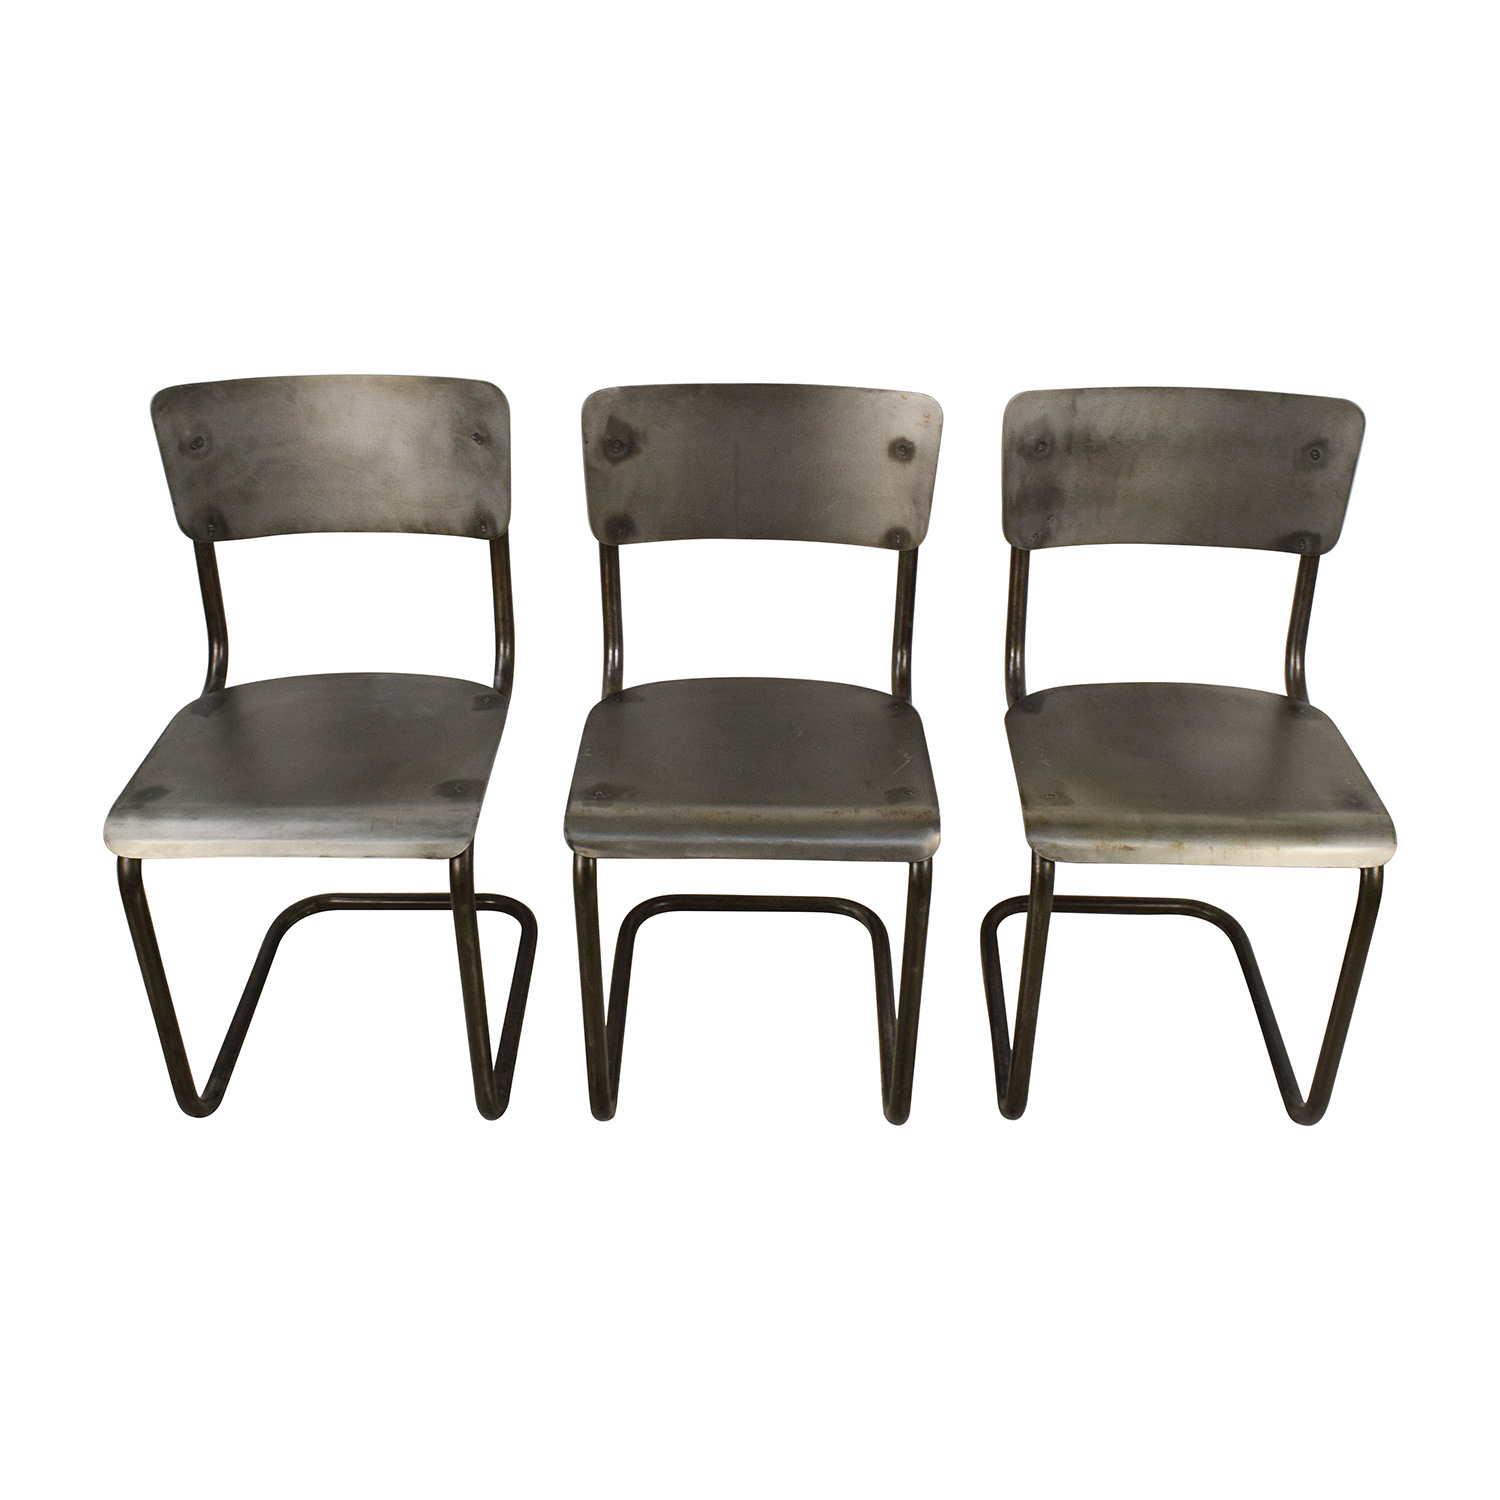 Industrial Style Metal Chair Set used